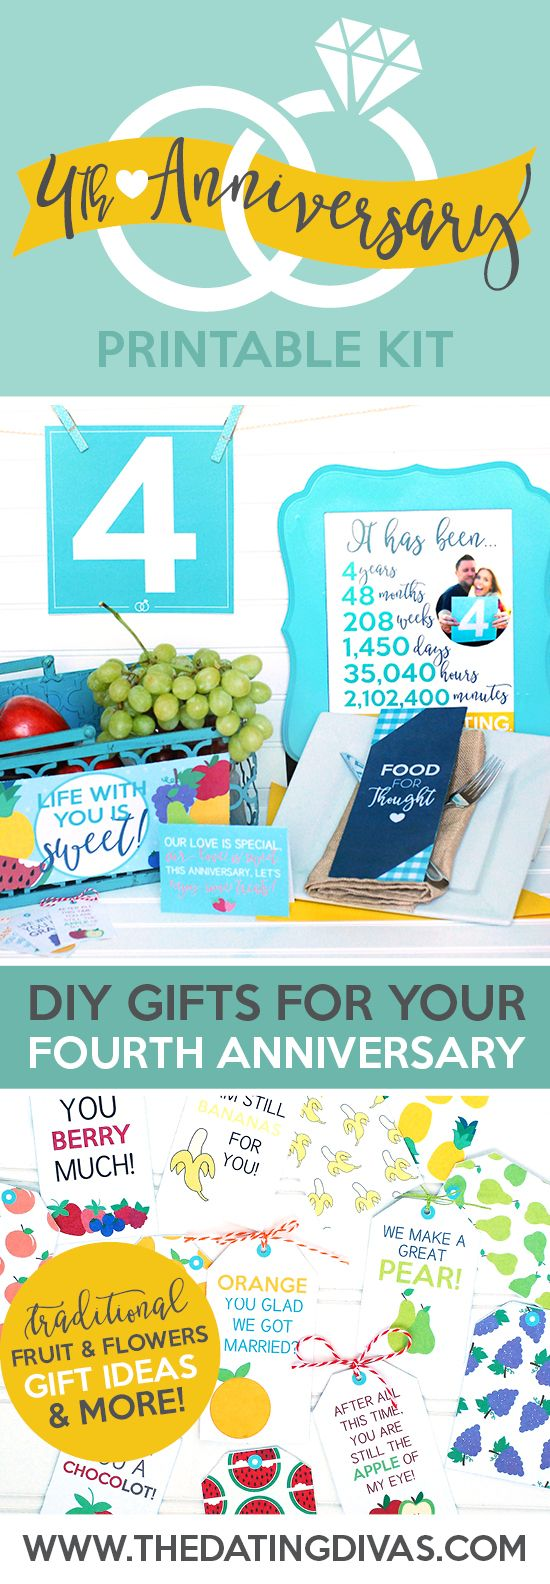 Super easy ideas for a fourth anniversary gift!! So cute! I love that they include a traditional fruit and flowers gift too.